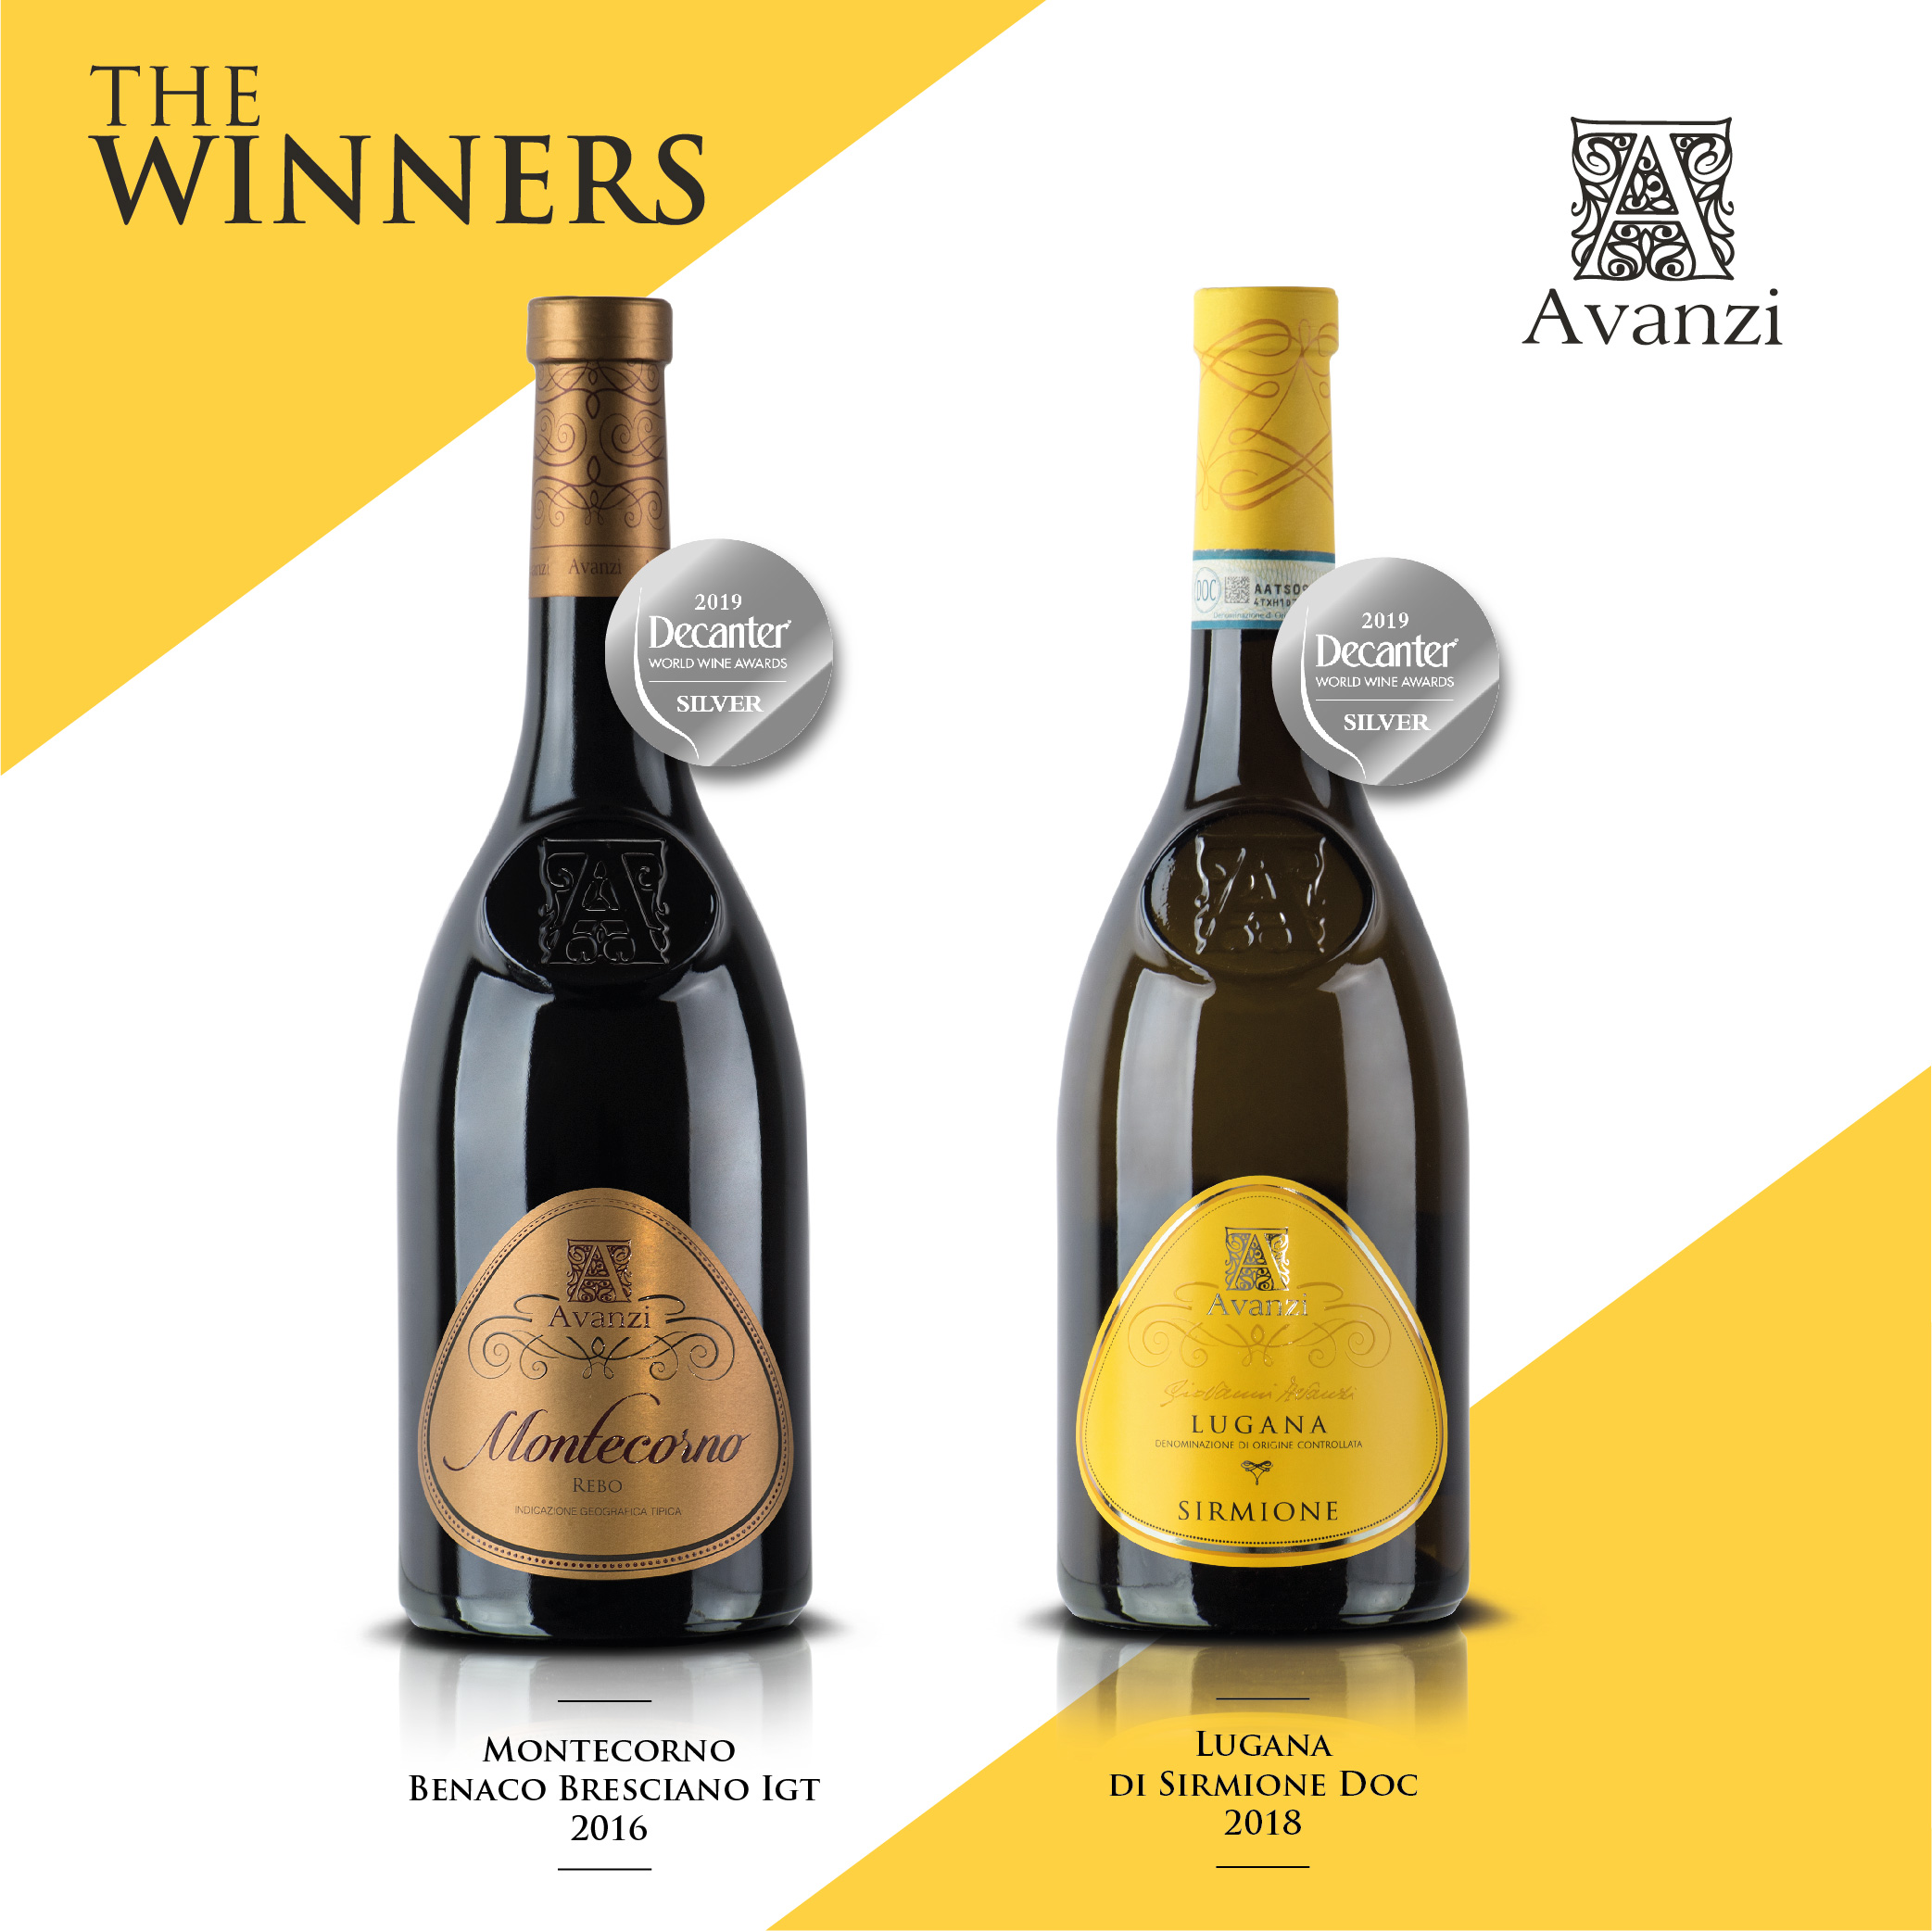 Medaglia d' ARGENTO al Decanter World Wine Awards (DWWA) LONDON 2019!